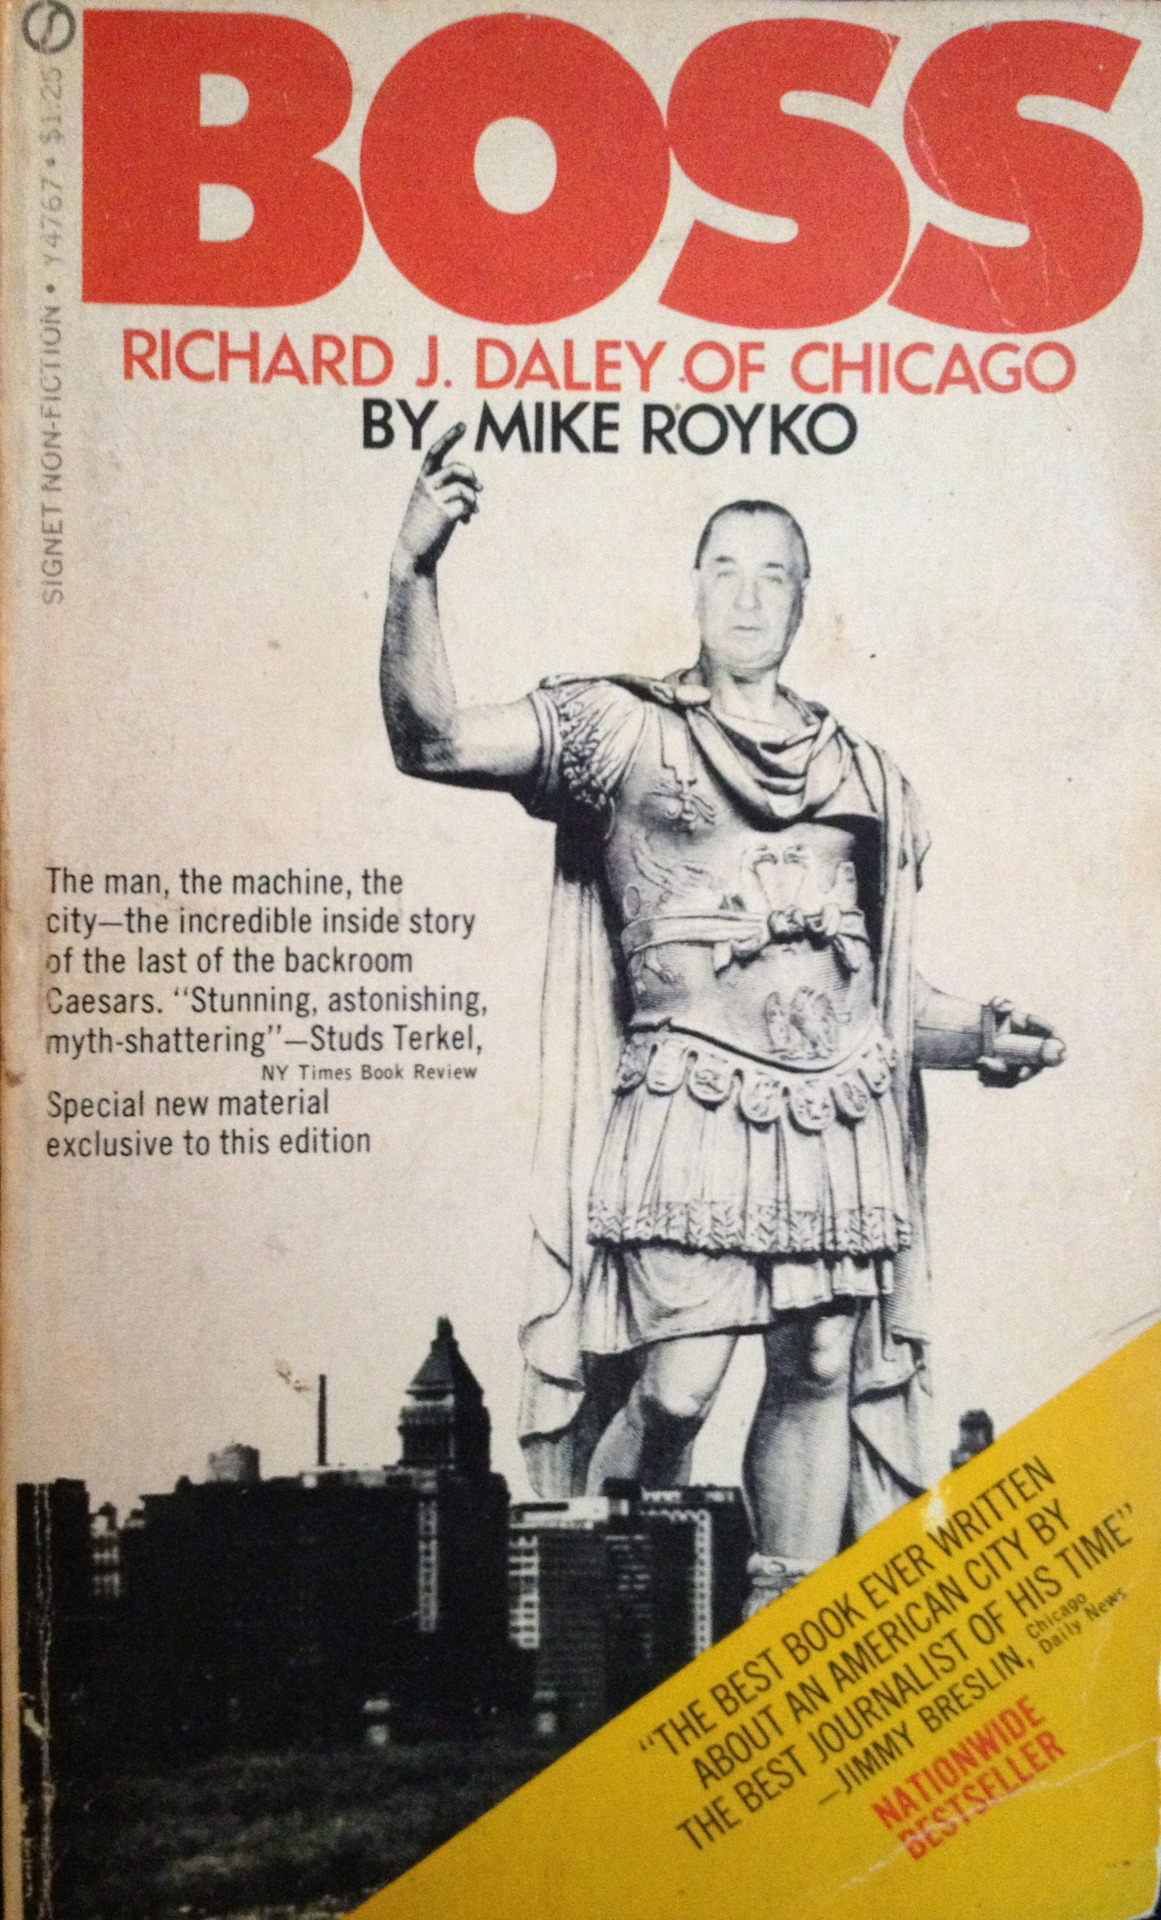 The newspaper columnist Mike Royko wrote this detailed portrait of Mayor Richard J. Daley, the head of the 1960s Democratic machine in Chicago, in 1971. I can't remember when or where I first acquired it, but at some point I lost my copy. Then my wife found another one buried on a bookshelf at her mother's house. I'm glad she did. The book is part indictment, part admiring profile, of the mayor and  the corrupt city that raised him and how it all spun out of control with the police brutality against  protesters at the 1968 Democratic Convention . Here's a description of the notoriously corrupt Police Department of the Daley era:  Not everybody was on the take. There were honest policemen. You could find them working in the crime laboratory, the radio lab, in desk jobs in headquarters. There were college-educated policemen, and you could find them working with juveniles. There were even rebelliously honest policemen, who might blow the whistle on the dishonest ones. You could find them walking a patrol along the edge of a cemetery. The honest policemen were distinguished by their rank, which was seldom above patrolman. They were problems, square pegs in round holes. Nobody wanted to work in a traffic car with an honest partner. He was useless on a vice detail because he might start arresting gamblers or hookers. So the honest ones were isolated and did the nonprofitable jobs. It had to be so, because a few good apples in the barrel could ruin the thousands of rotten ones.      [Originally posted on my discontinued This Old Book Tumblr.]